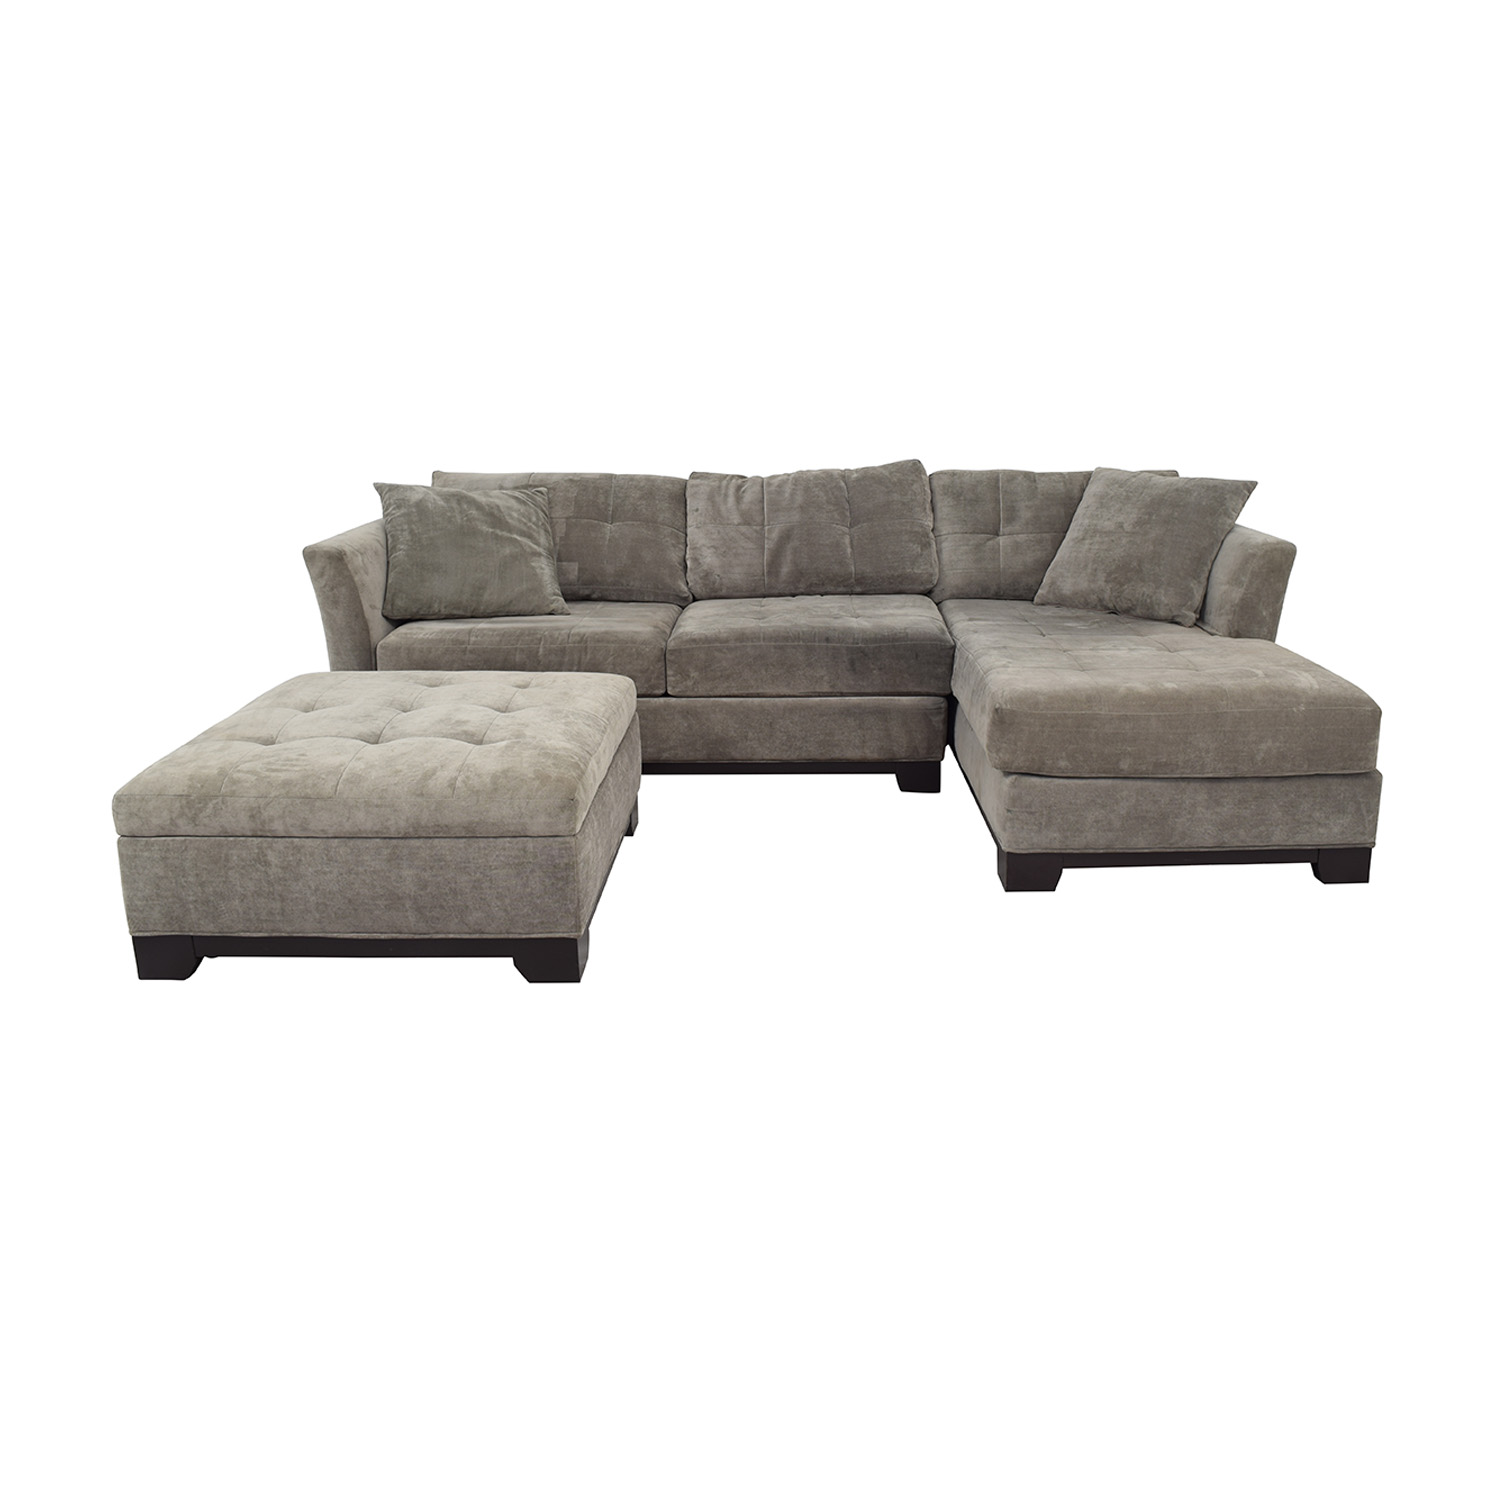 Macy's Furniture Chaise Couch with Ottoman / Sofas